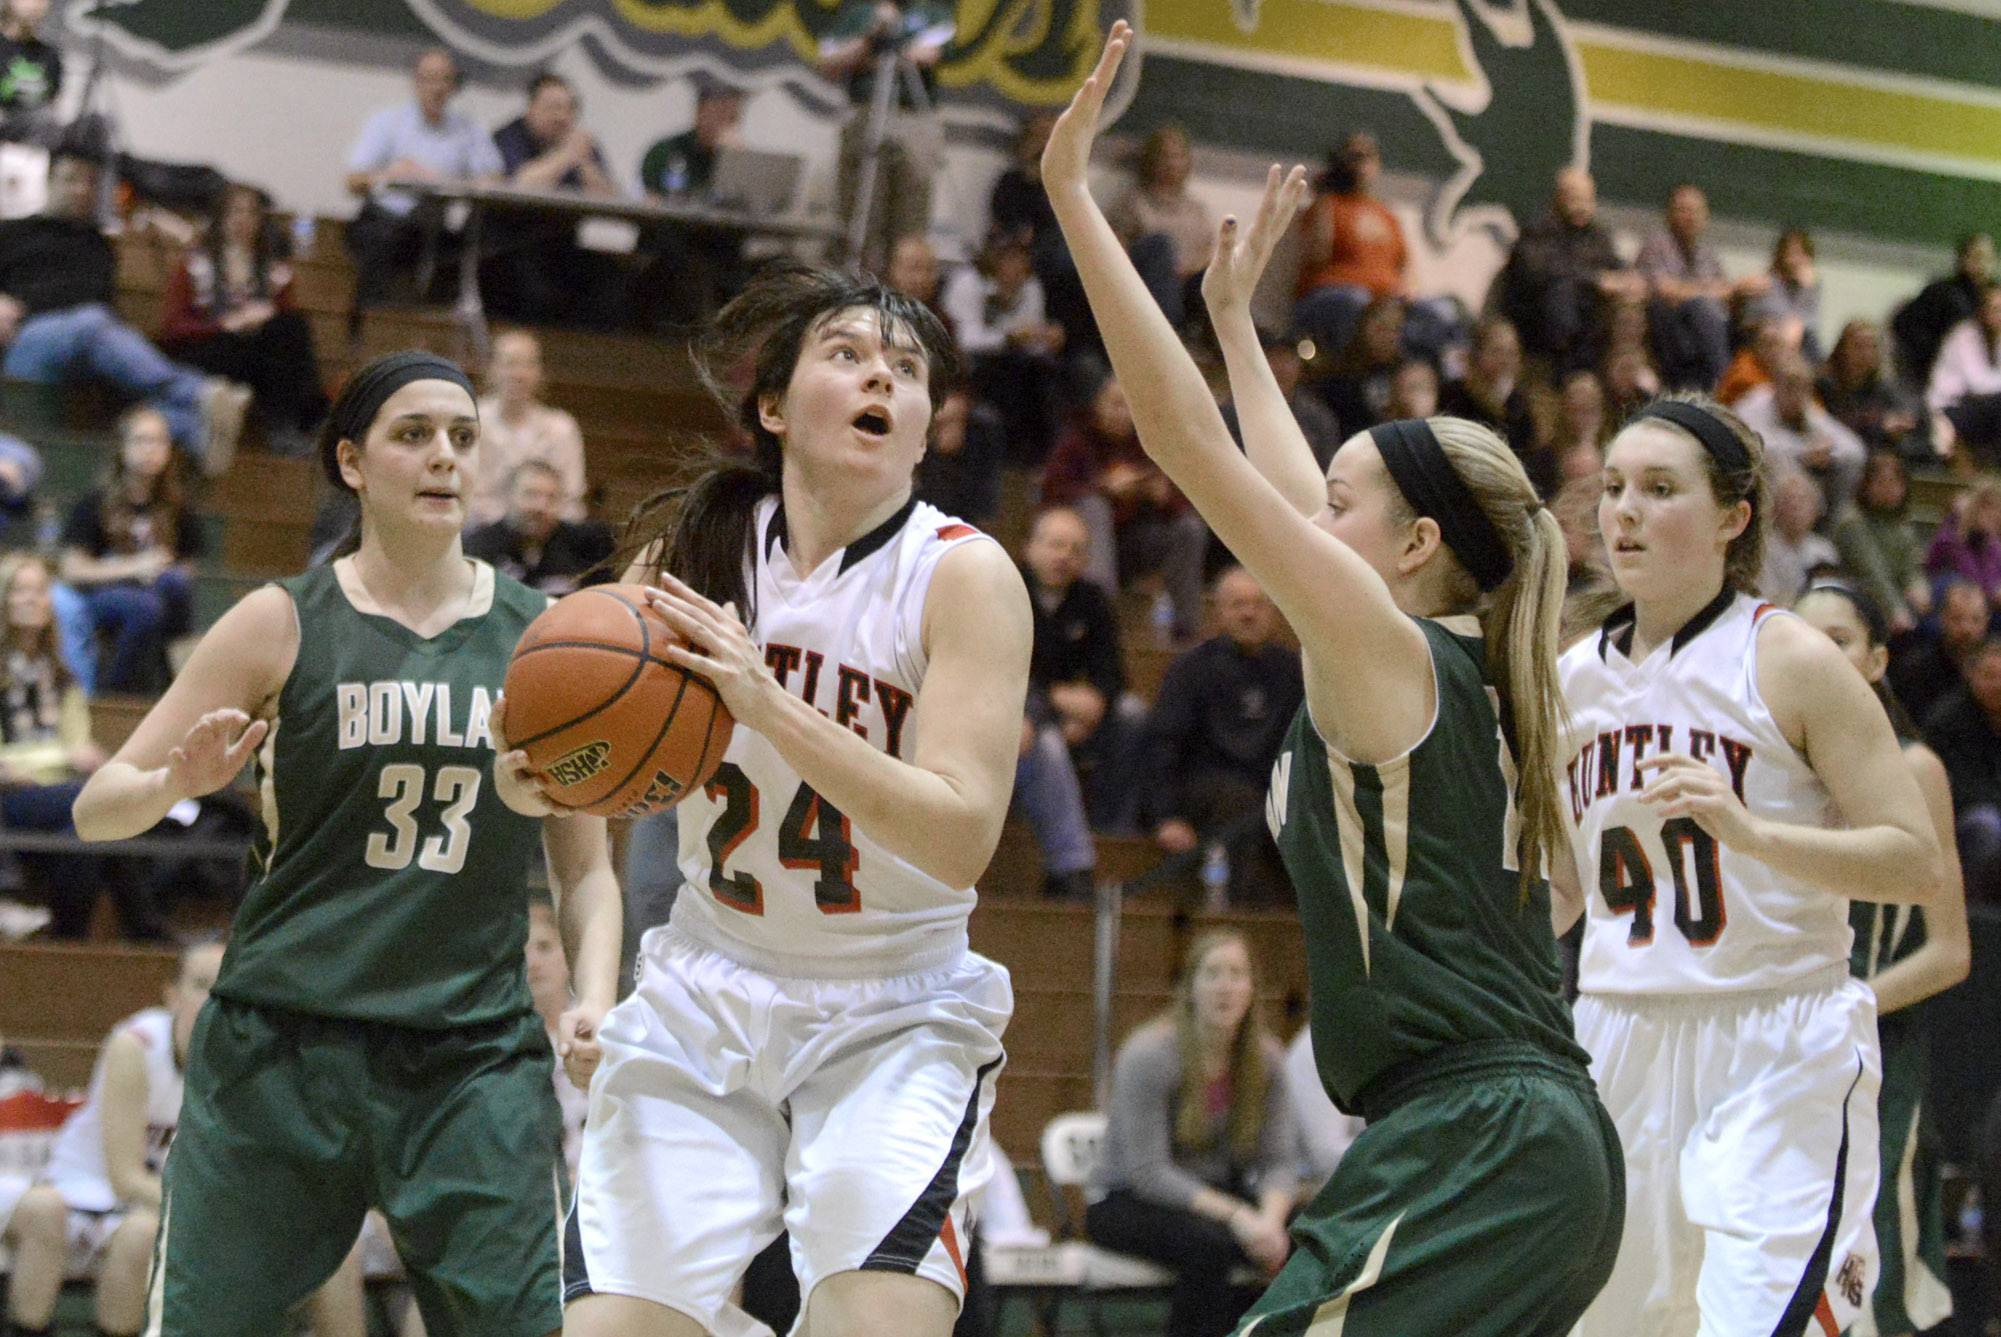 Huntley's Bethany Zornow looks to shoot over a block by Rockford Boylan's Allie Zimmerman in the fourth quarter of the Class 4A sectional championship at Crystal Lake South High School in Crystal Lake on Thursday, February 27.